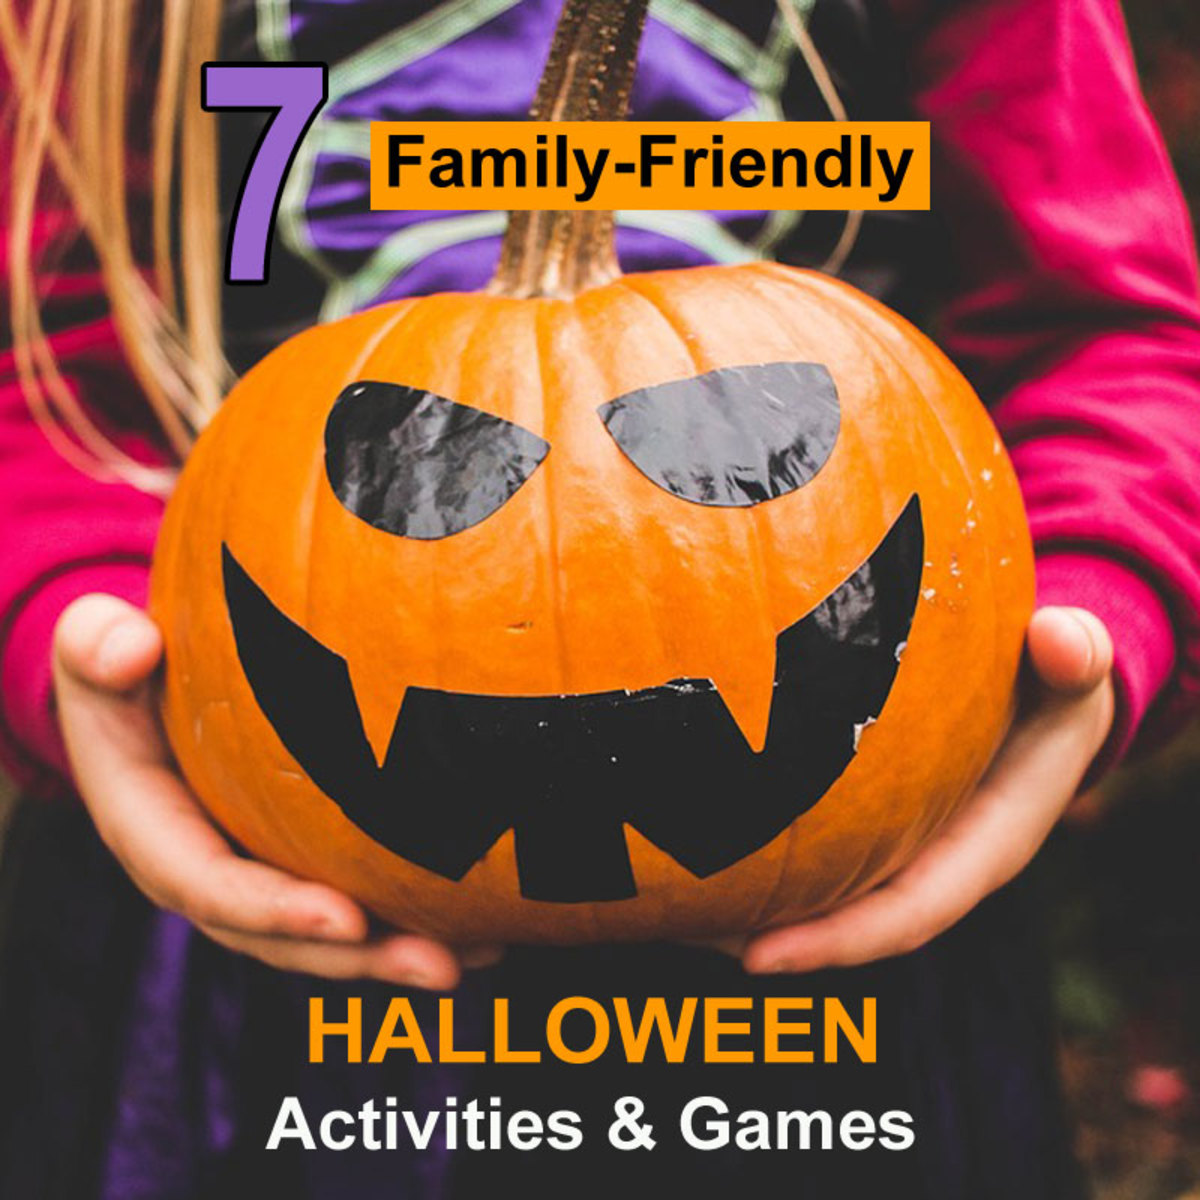 Give some of these game and activity ideas a try this year at your family's Halloween celebration.